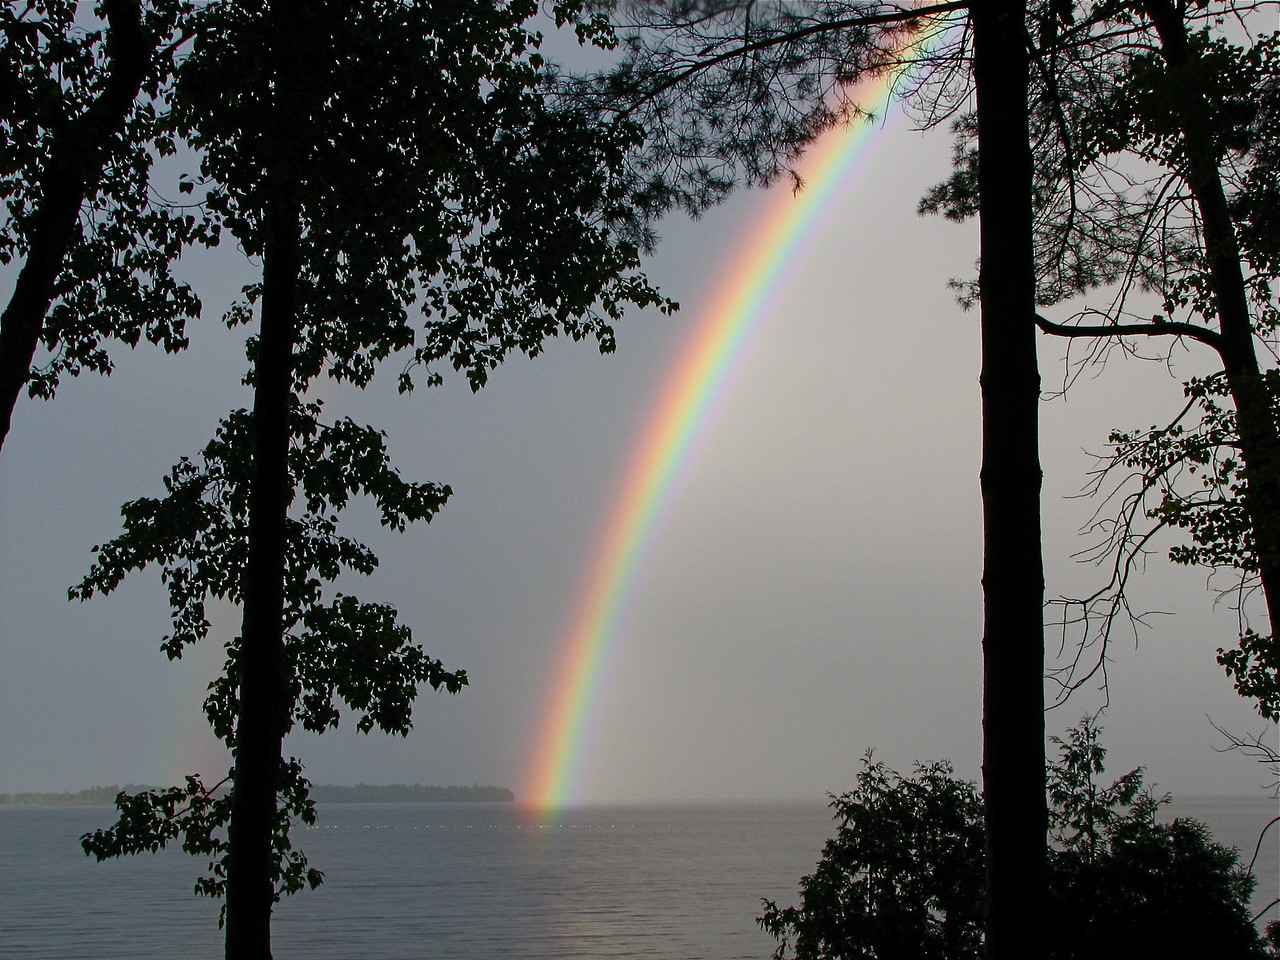 Intense rainbow touching the south end of Schuyler Island, Lake Champlain. This island was involved in the 1776 Battle of Valcour.